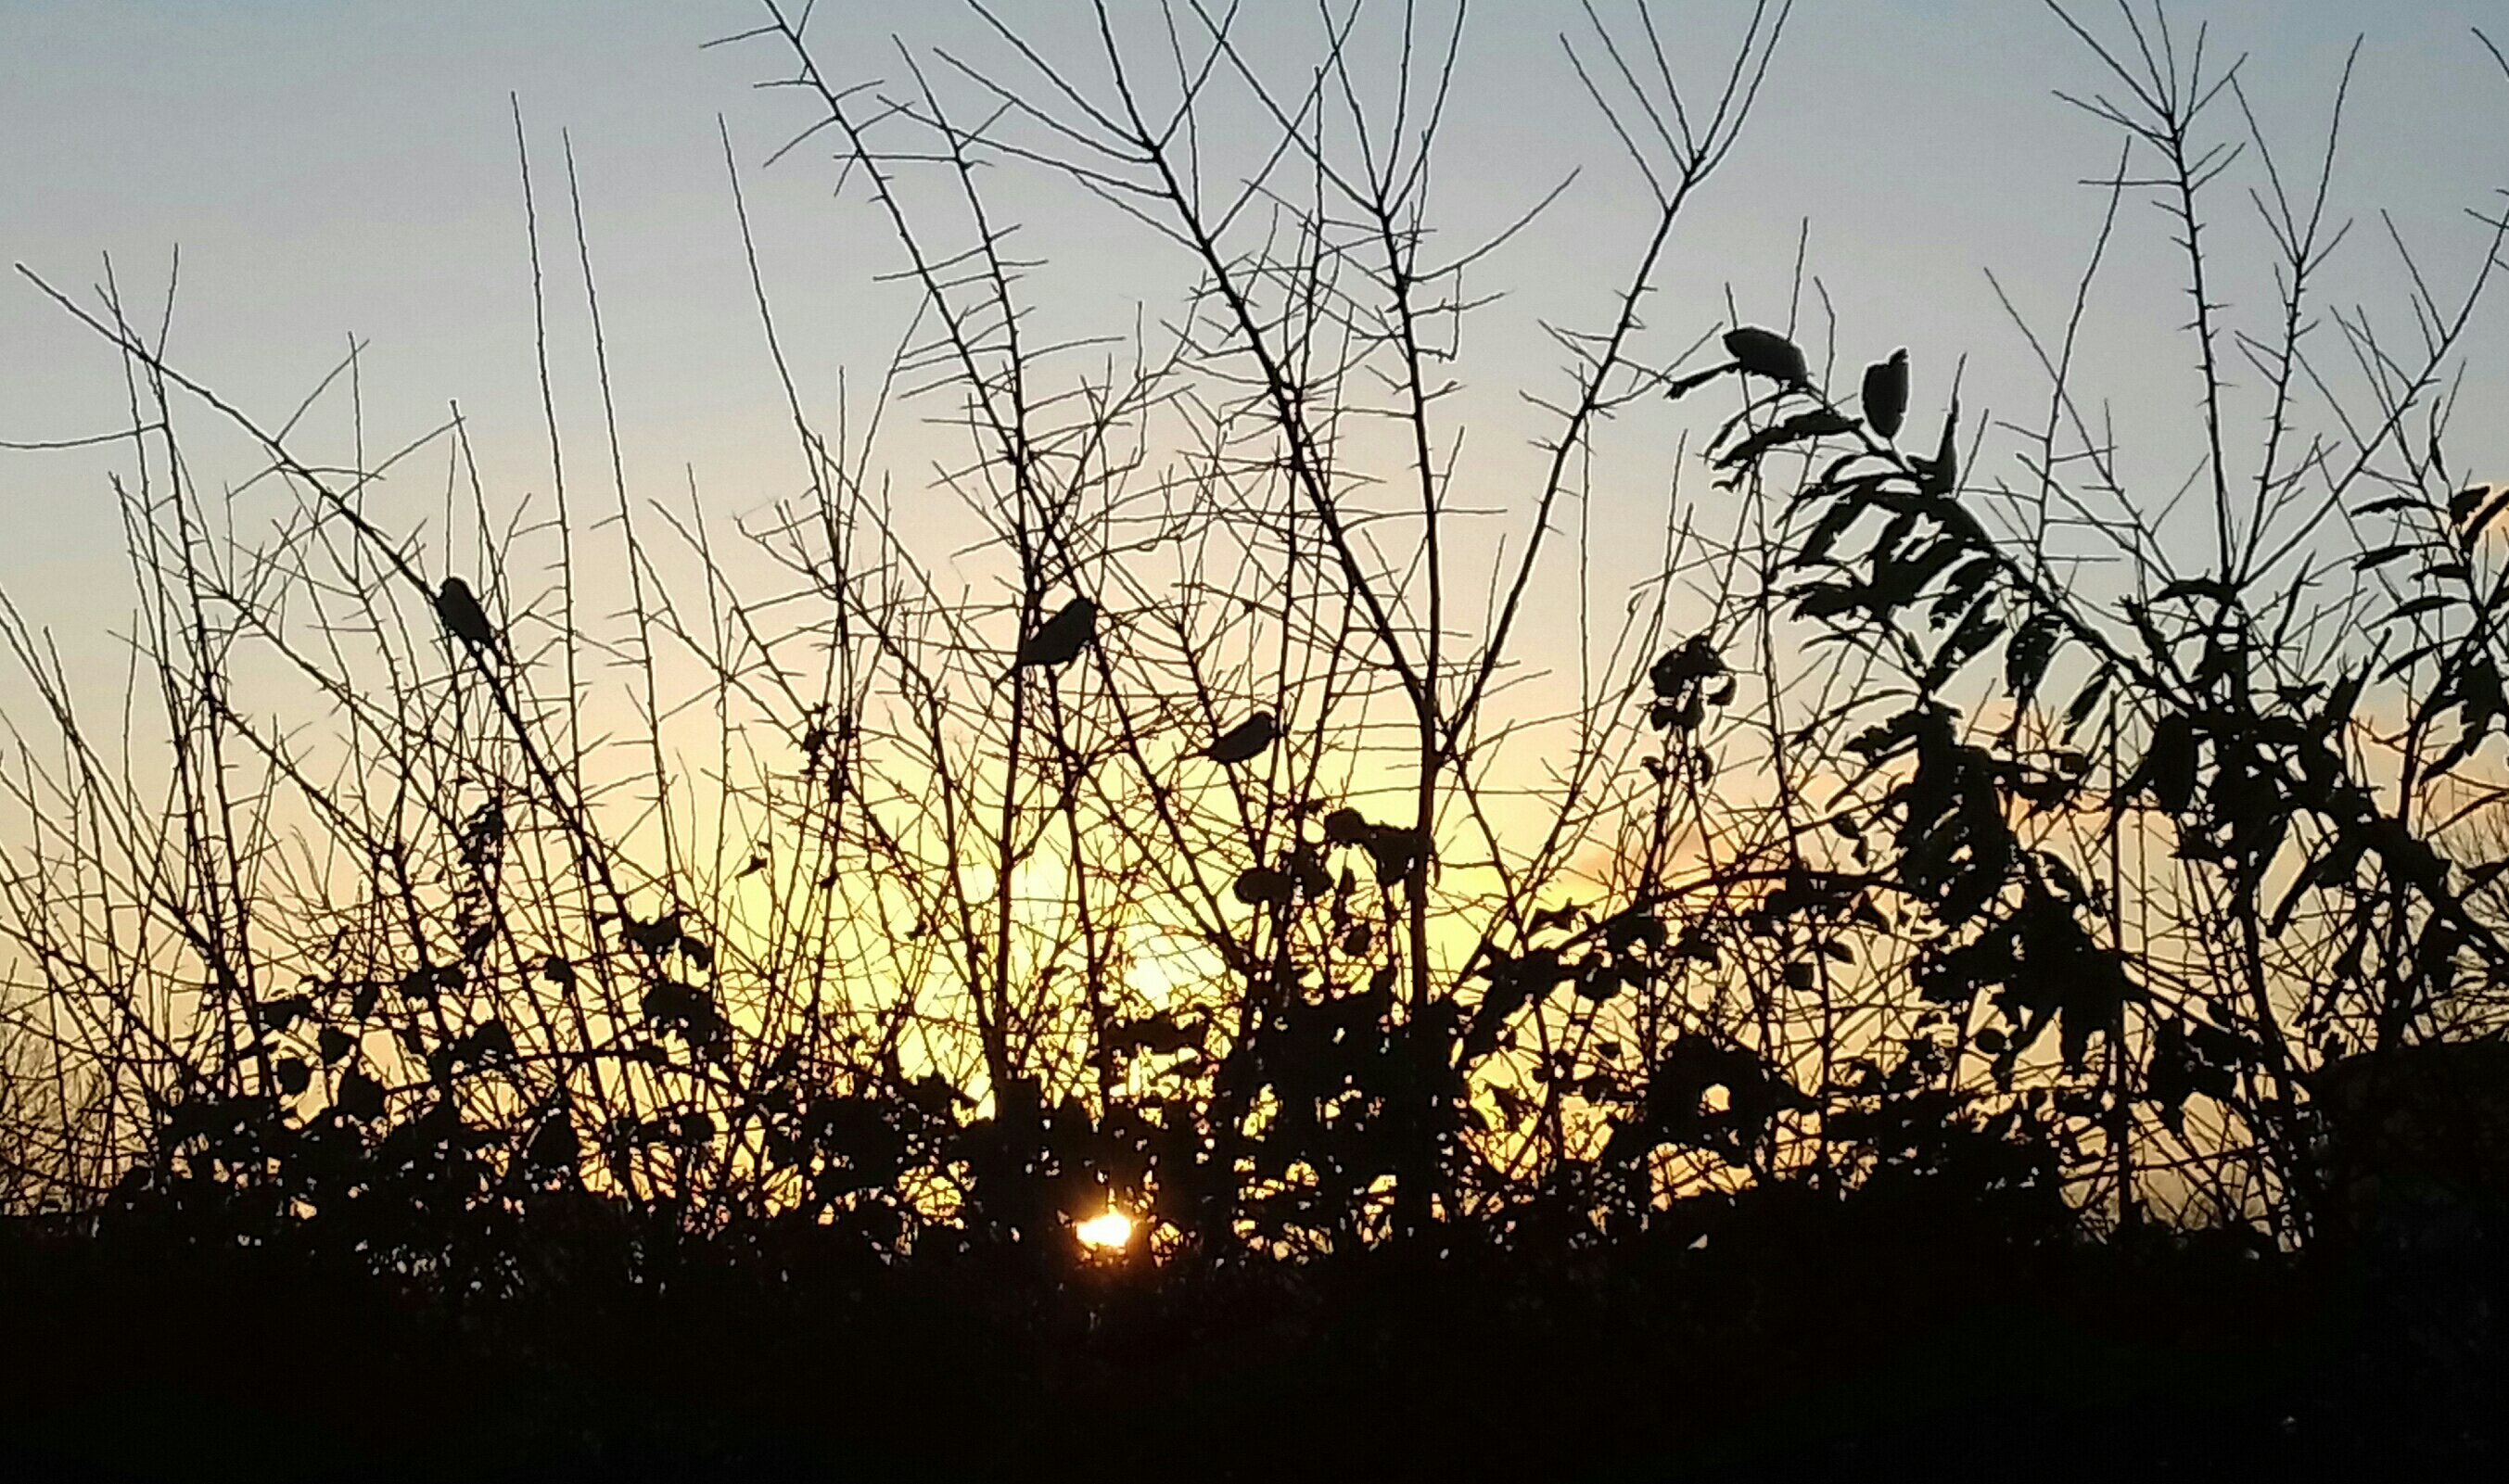 Photograph of three sparrows perched in a hedge silhouetted against a golden sunset